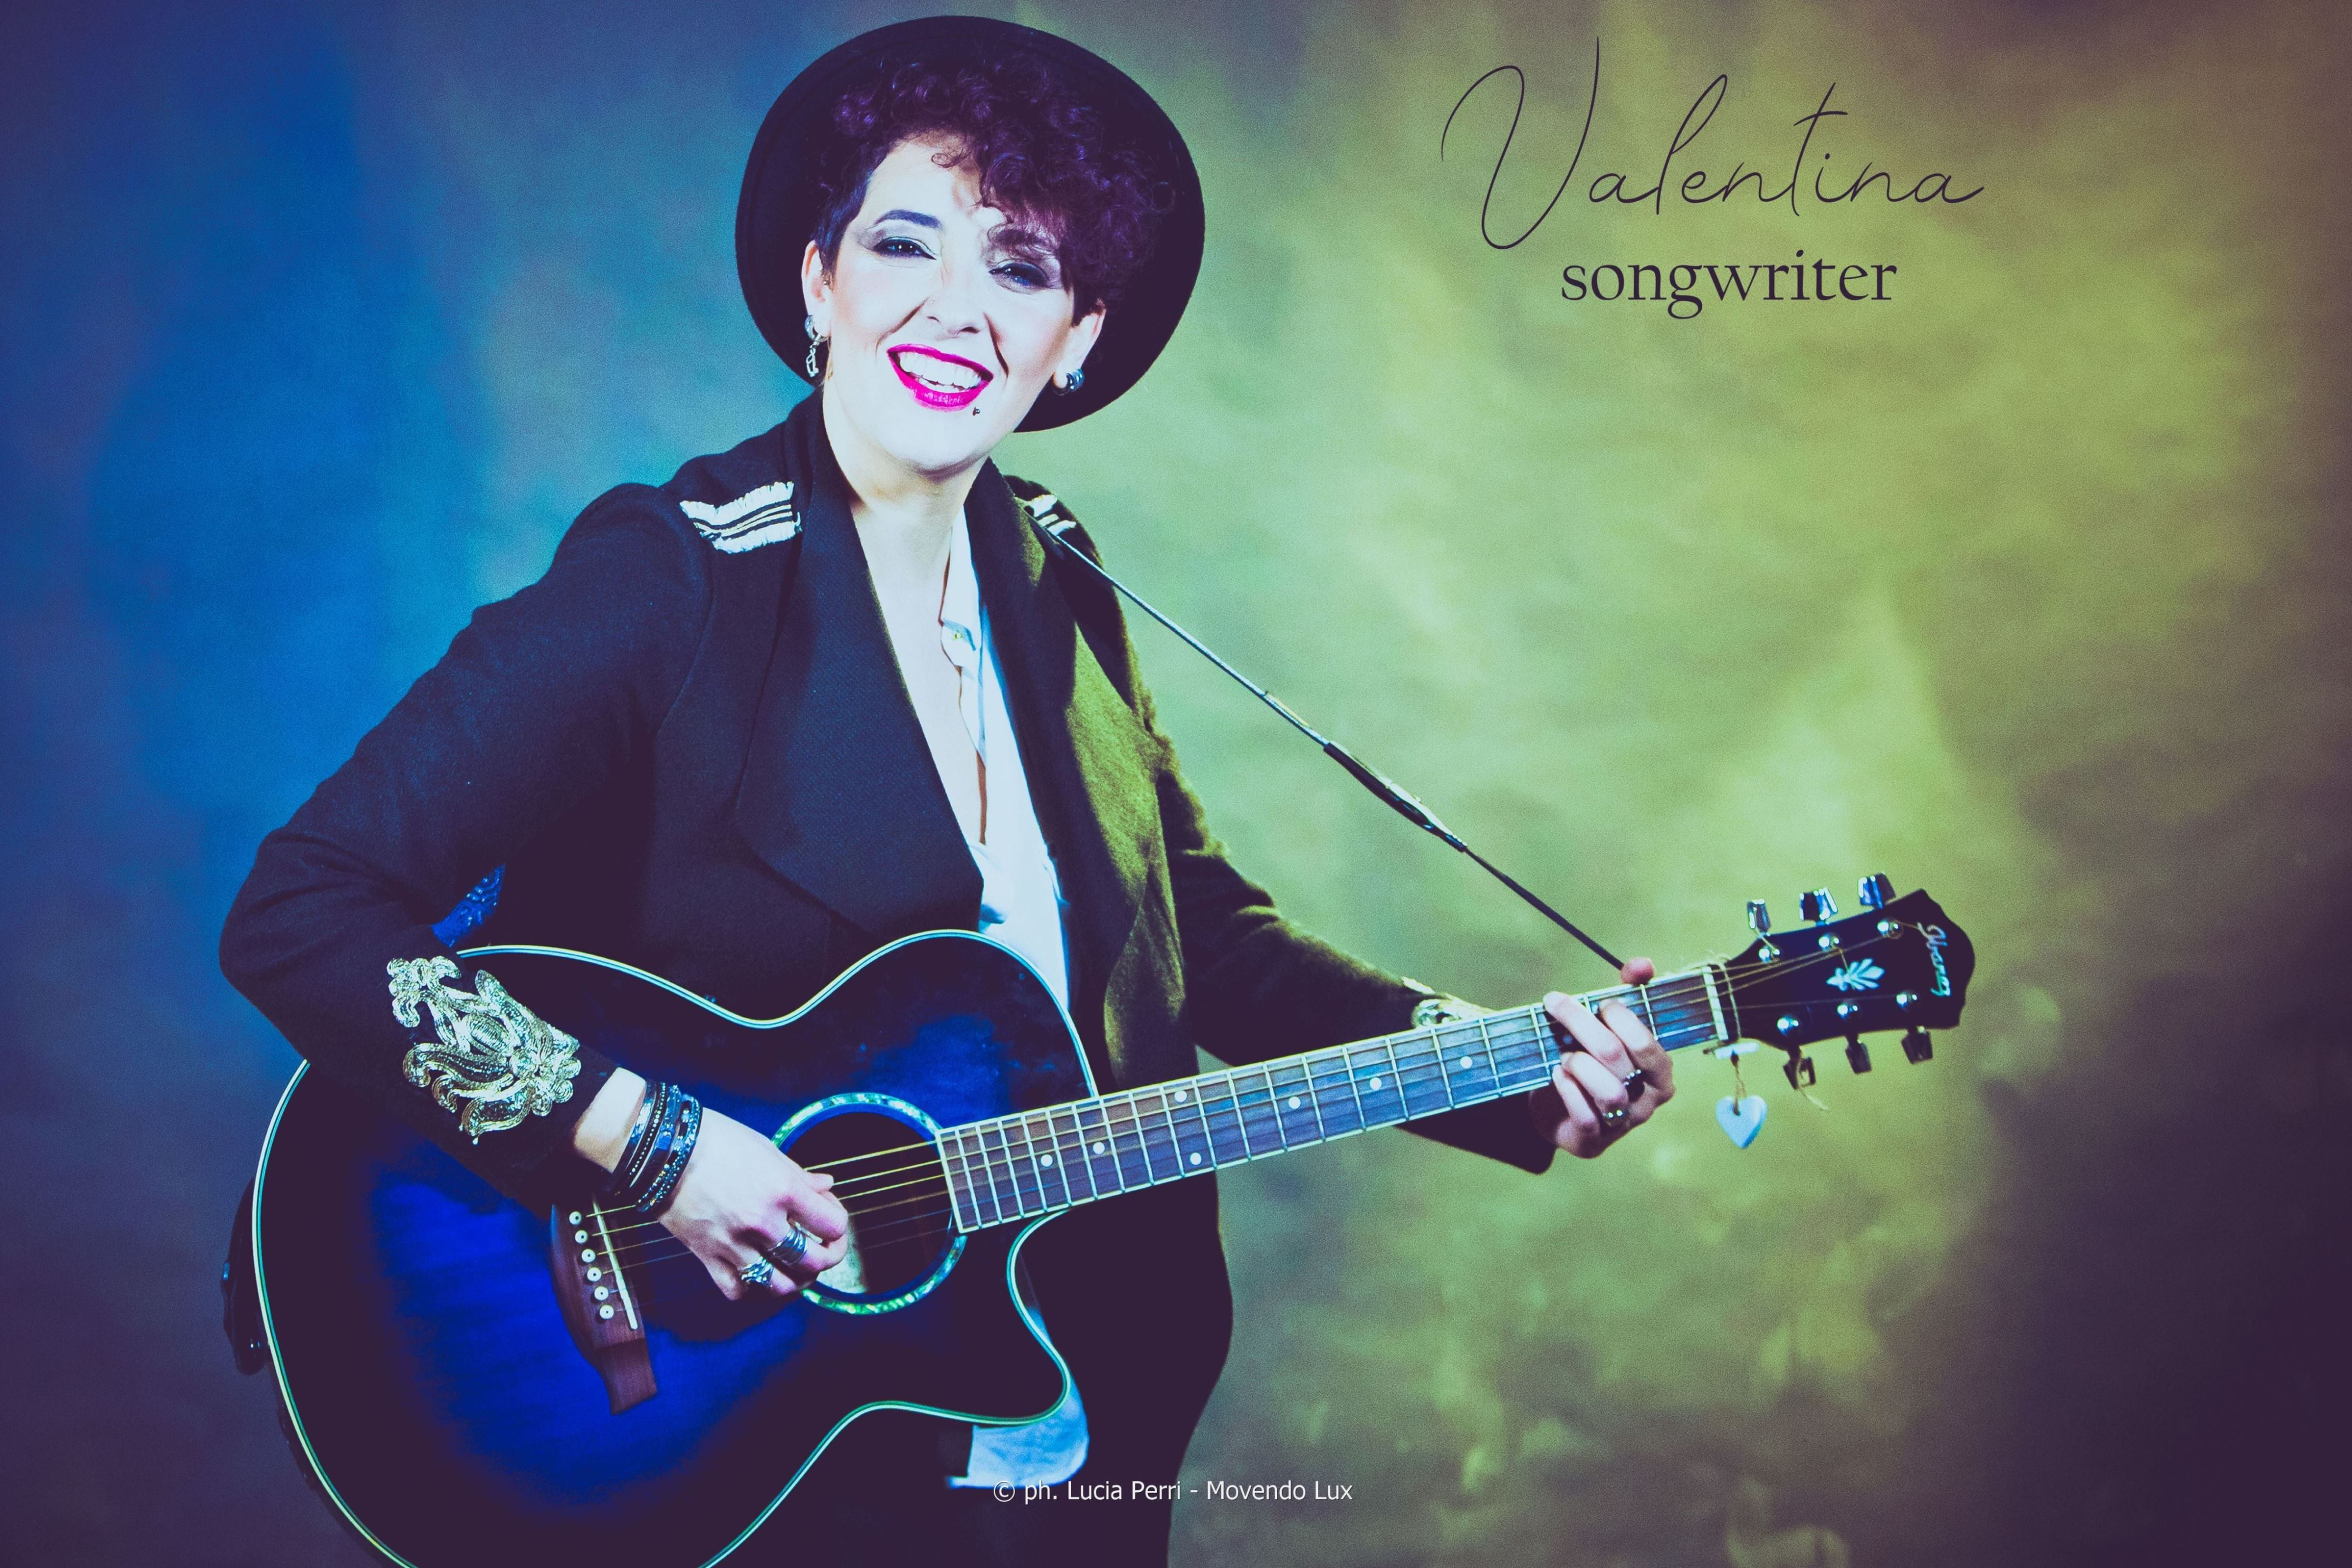 valentina-songwriter-2